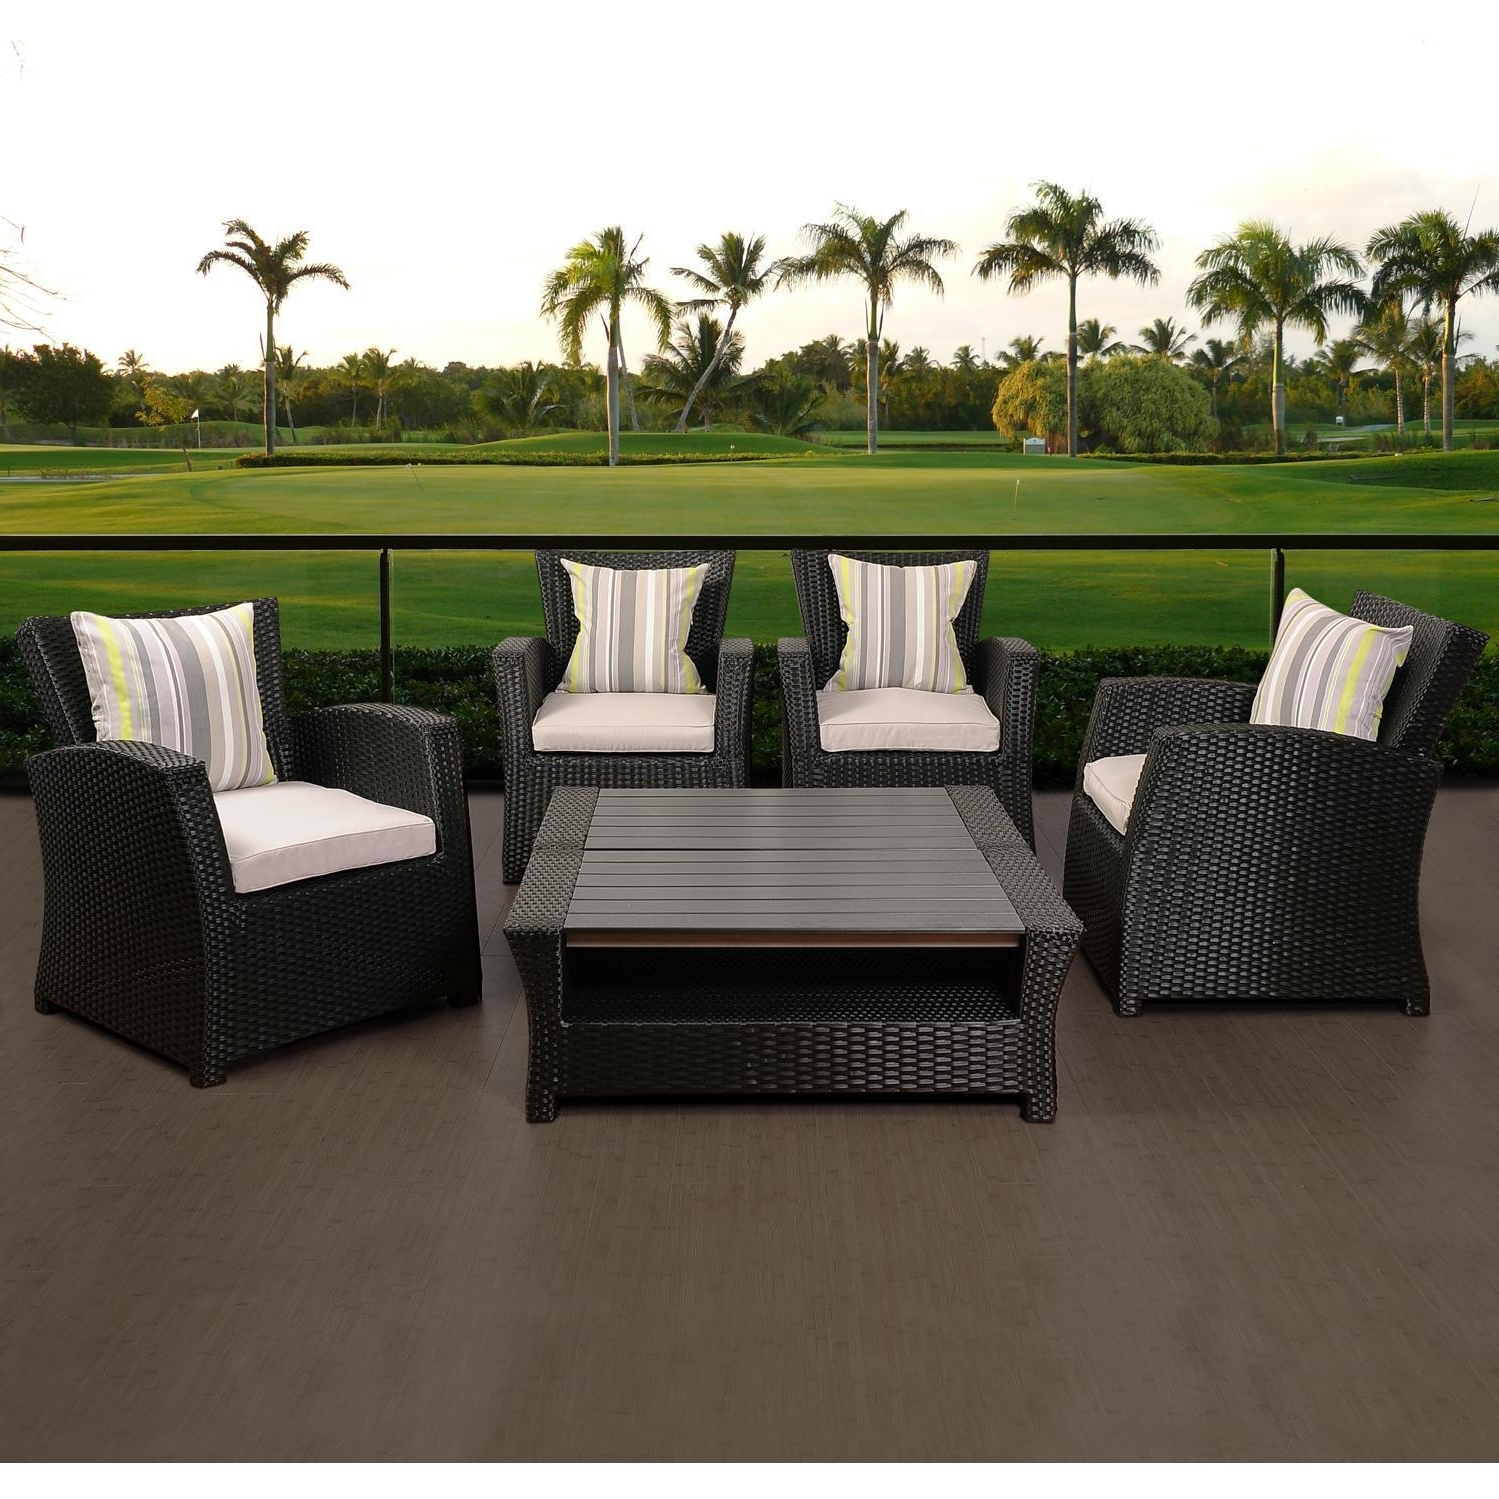 Atlantic Staffordshire 4 Person Resin Wicker Patio Conversation Set With Regard To Popular Patio Conversation Sets (View 1 of 20)